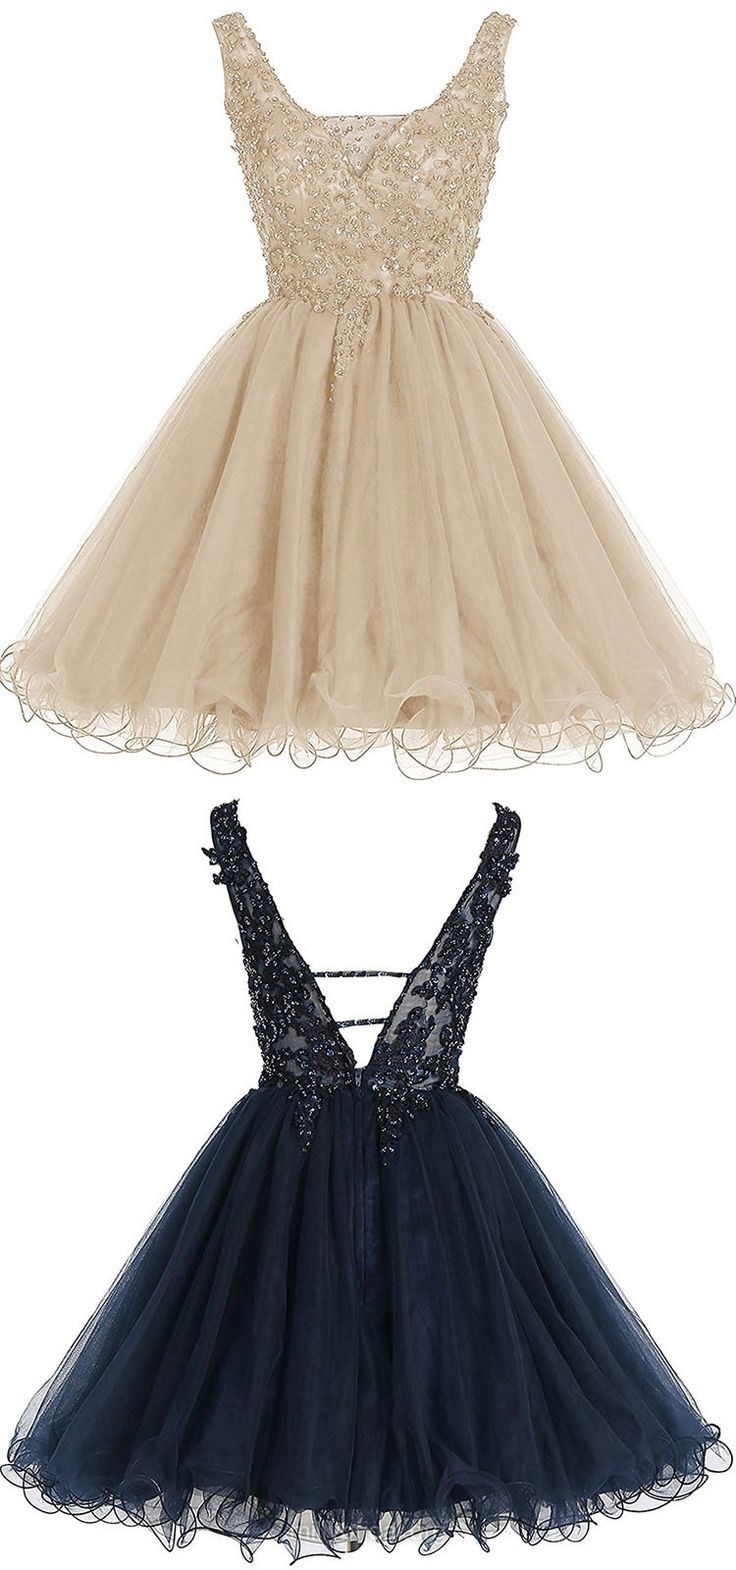 Cute Homecoming Dresses,A-line V-neck Party Gowns,Tulle Short/Mini Cocktail Dress,Beading Champagne Formal Evening Dress,Backless Prom Dresses